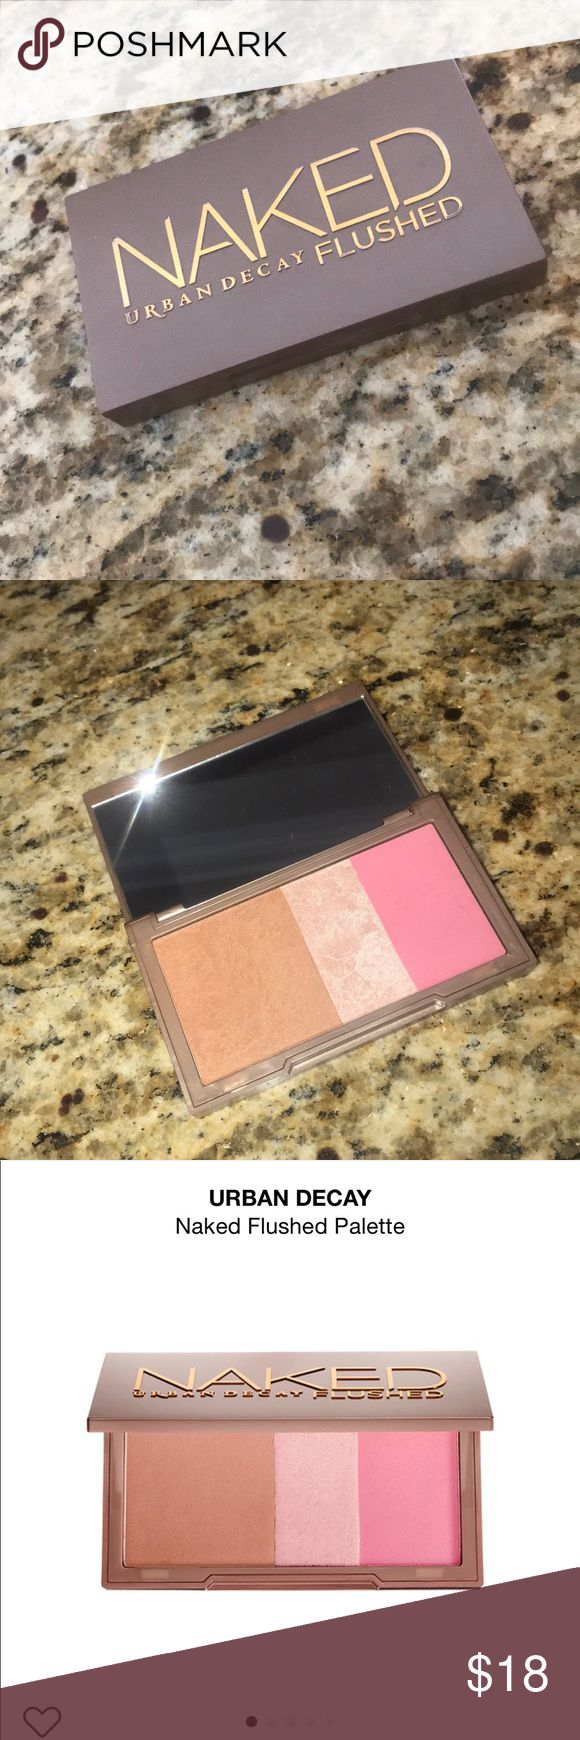 ✨💕✨URBAN DECAY NAKED FLUSHED PALETTE ✨💕✨ ✨💕URBAN DECAY NAKED FLUSHED PALETTE💕✨ ✨💕BRONZER, BLUSH and HIGHLIGHTER💕✨ Urban Decay Makeup Bronzer